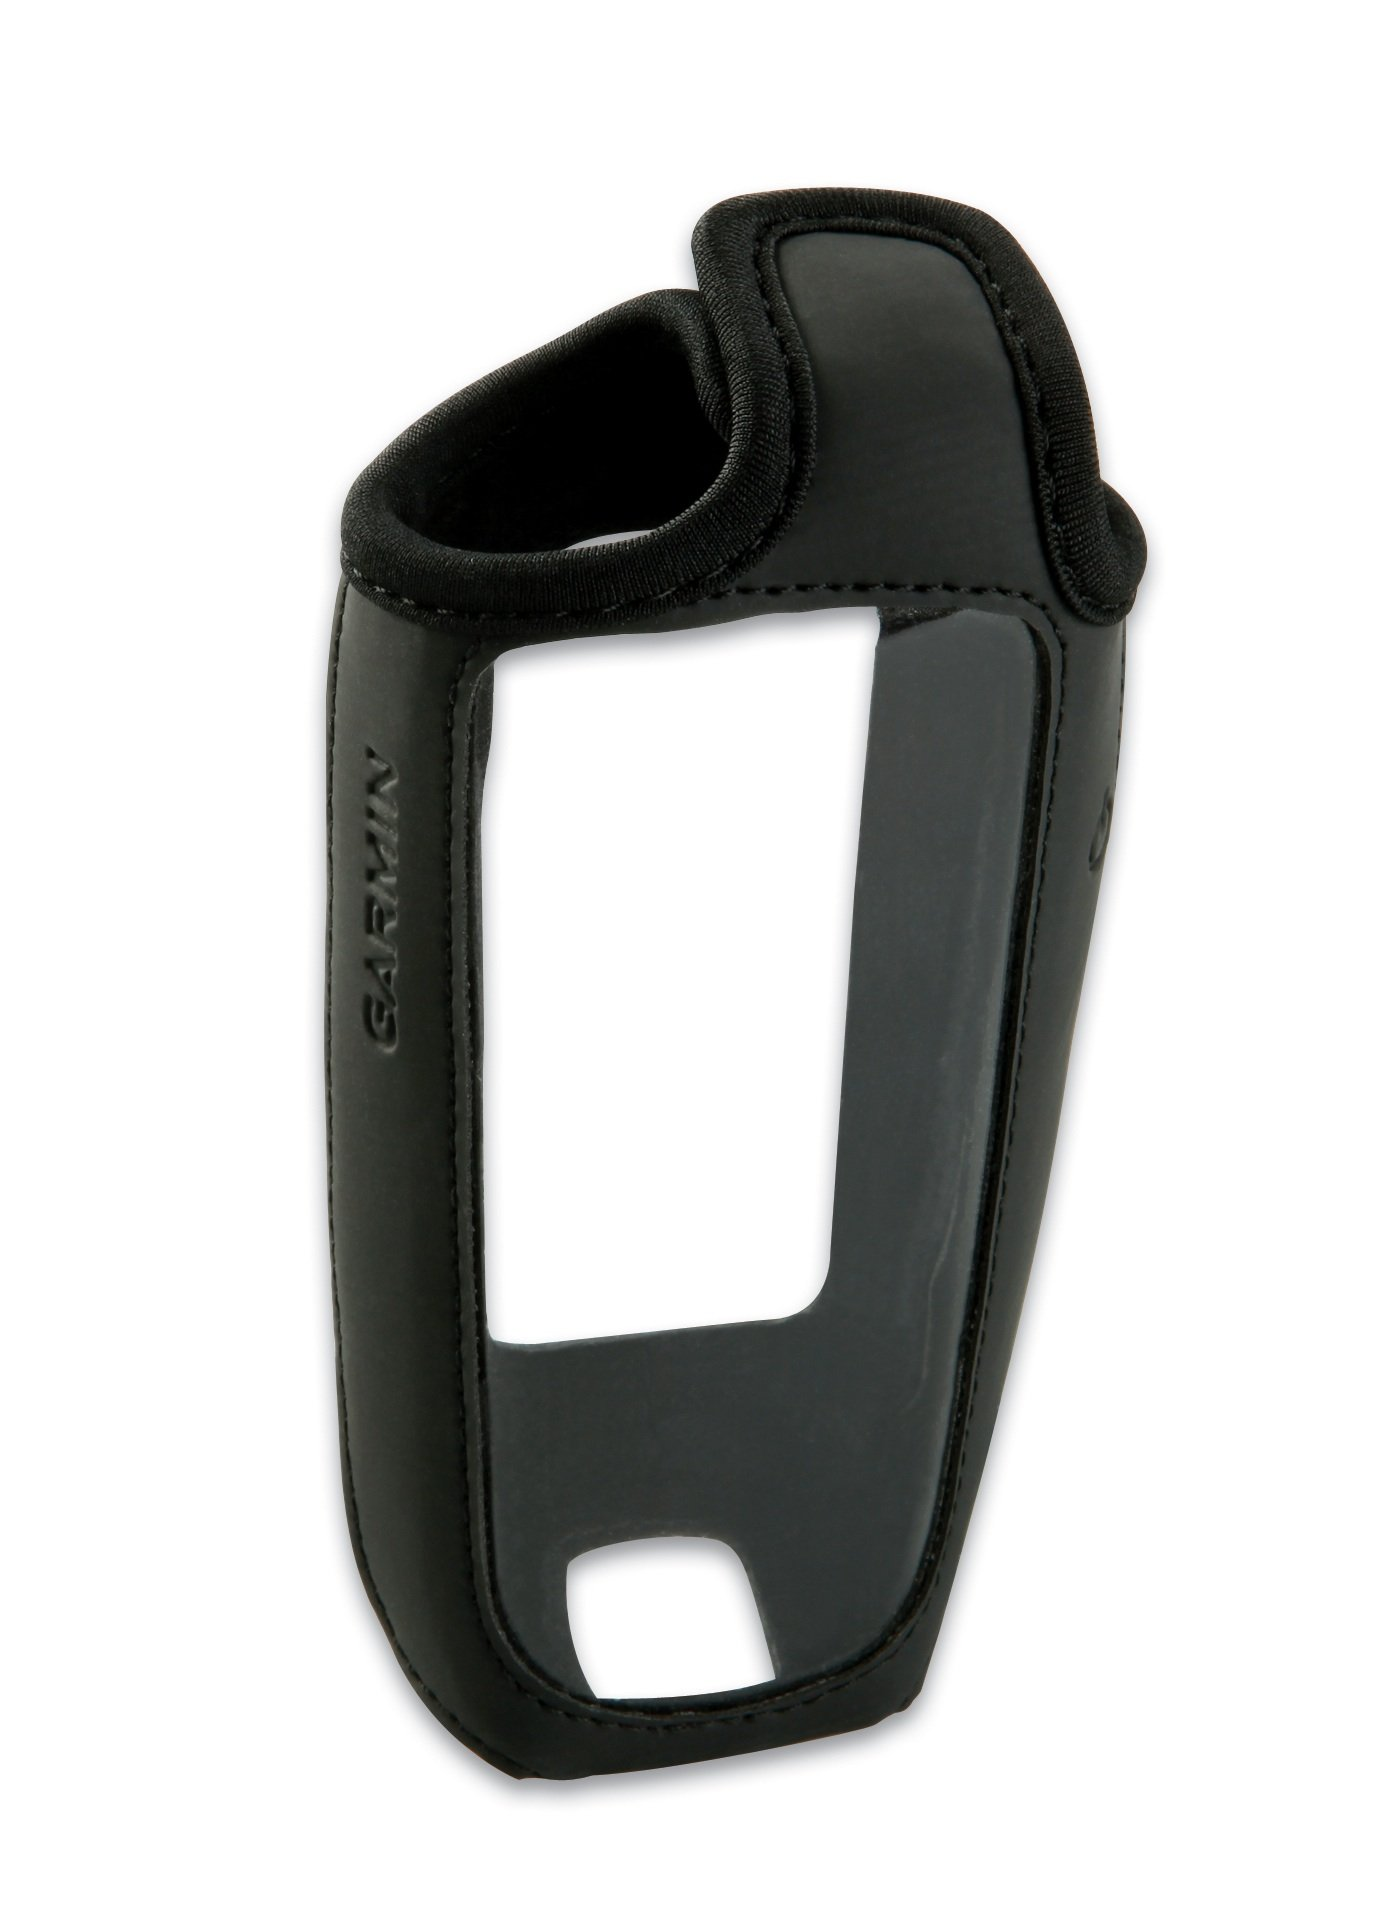 Garmin Slip Case for GPSMAP 62, 62s, 62st by Garmin